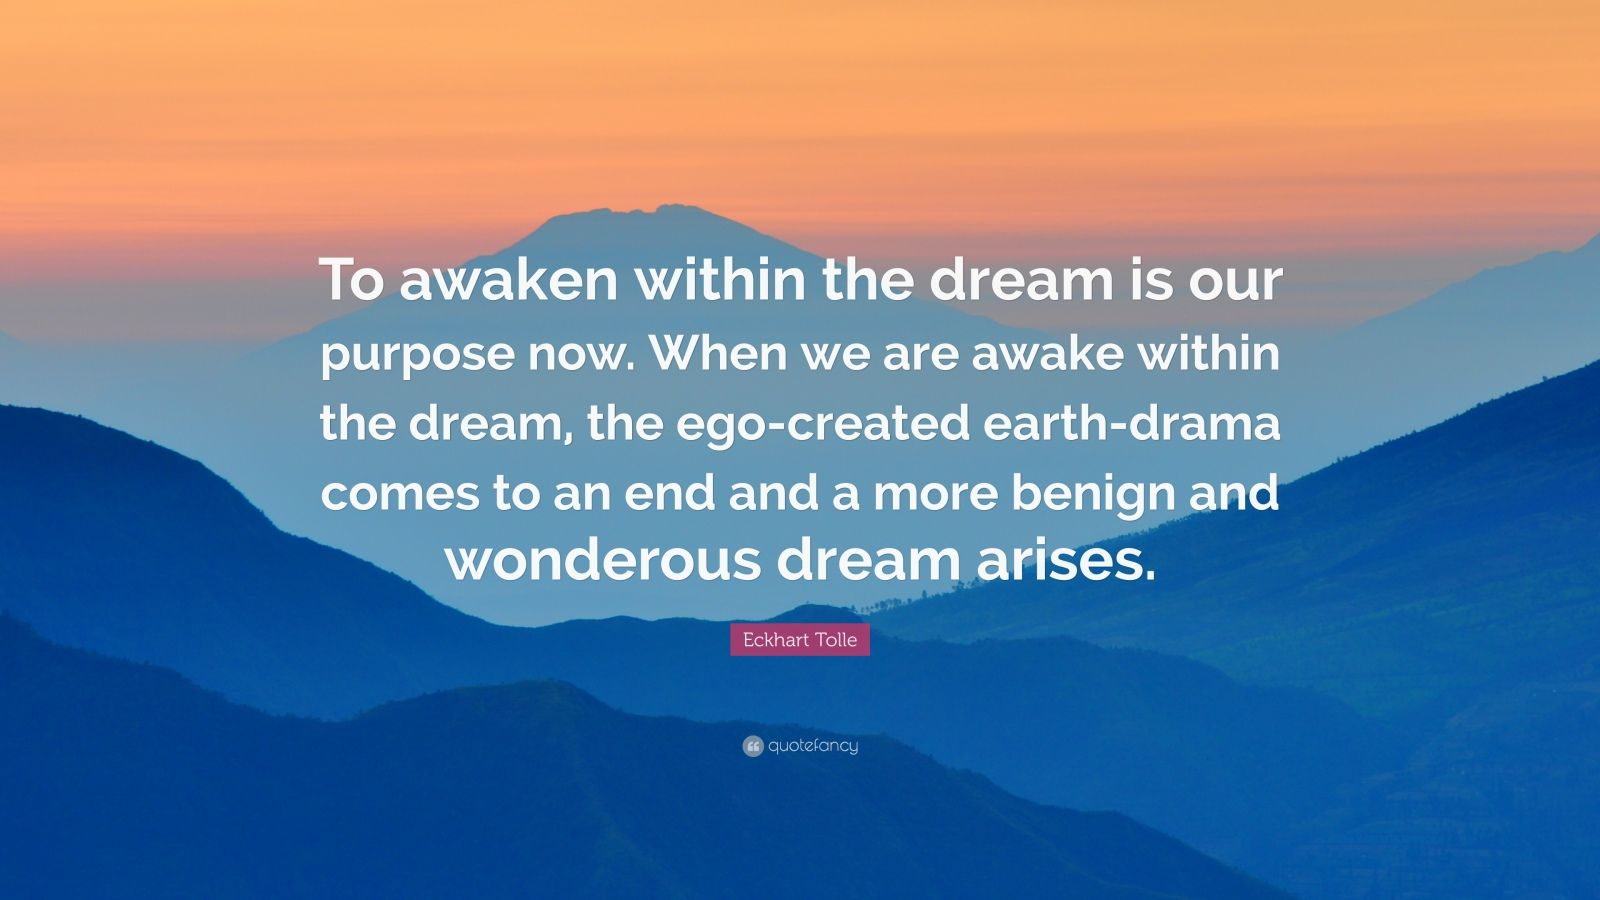 """Eckhart Tolle Quote: """"To awaken within the dream is our purpose now. When we are awake within the dream, the ego-created earth-drama comes to an end and a more benign and wonderous dream arises."""""""